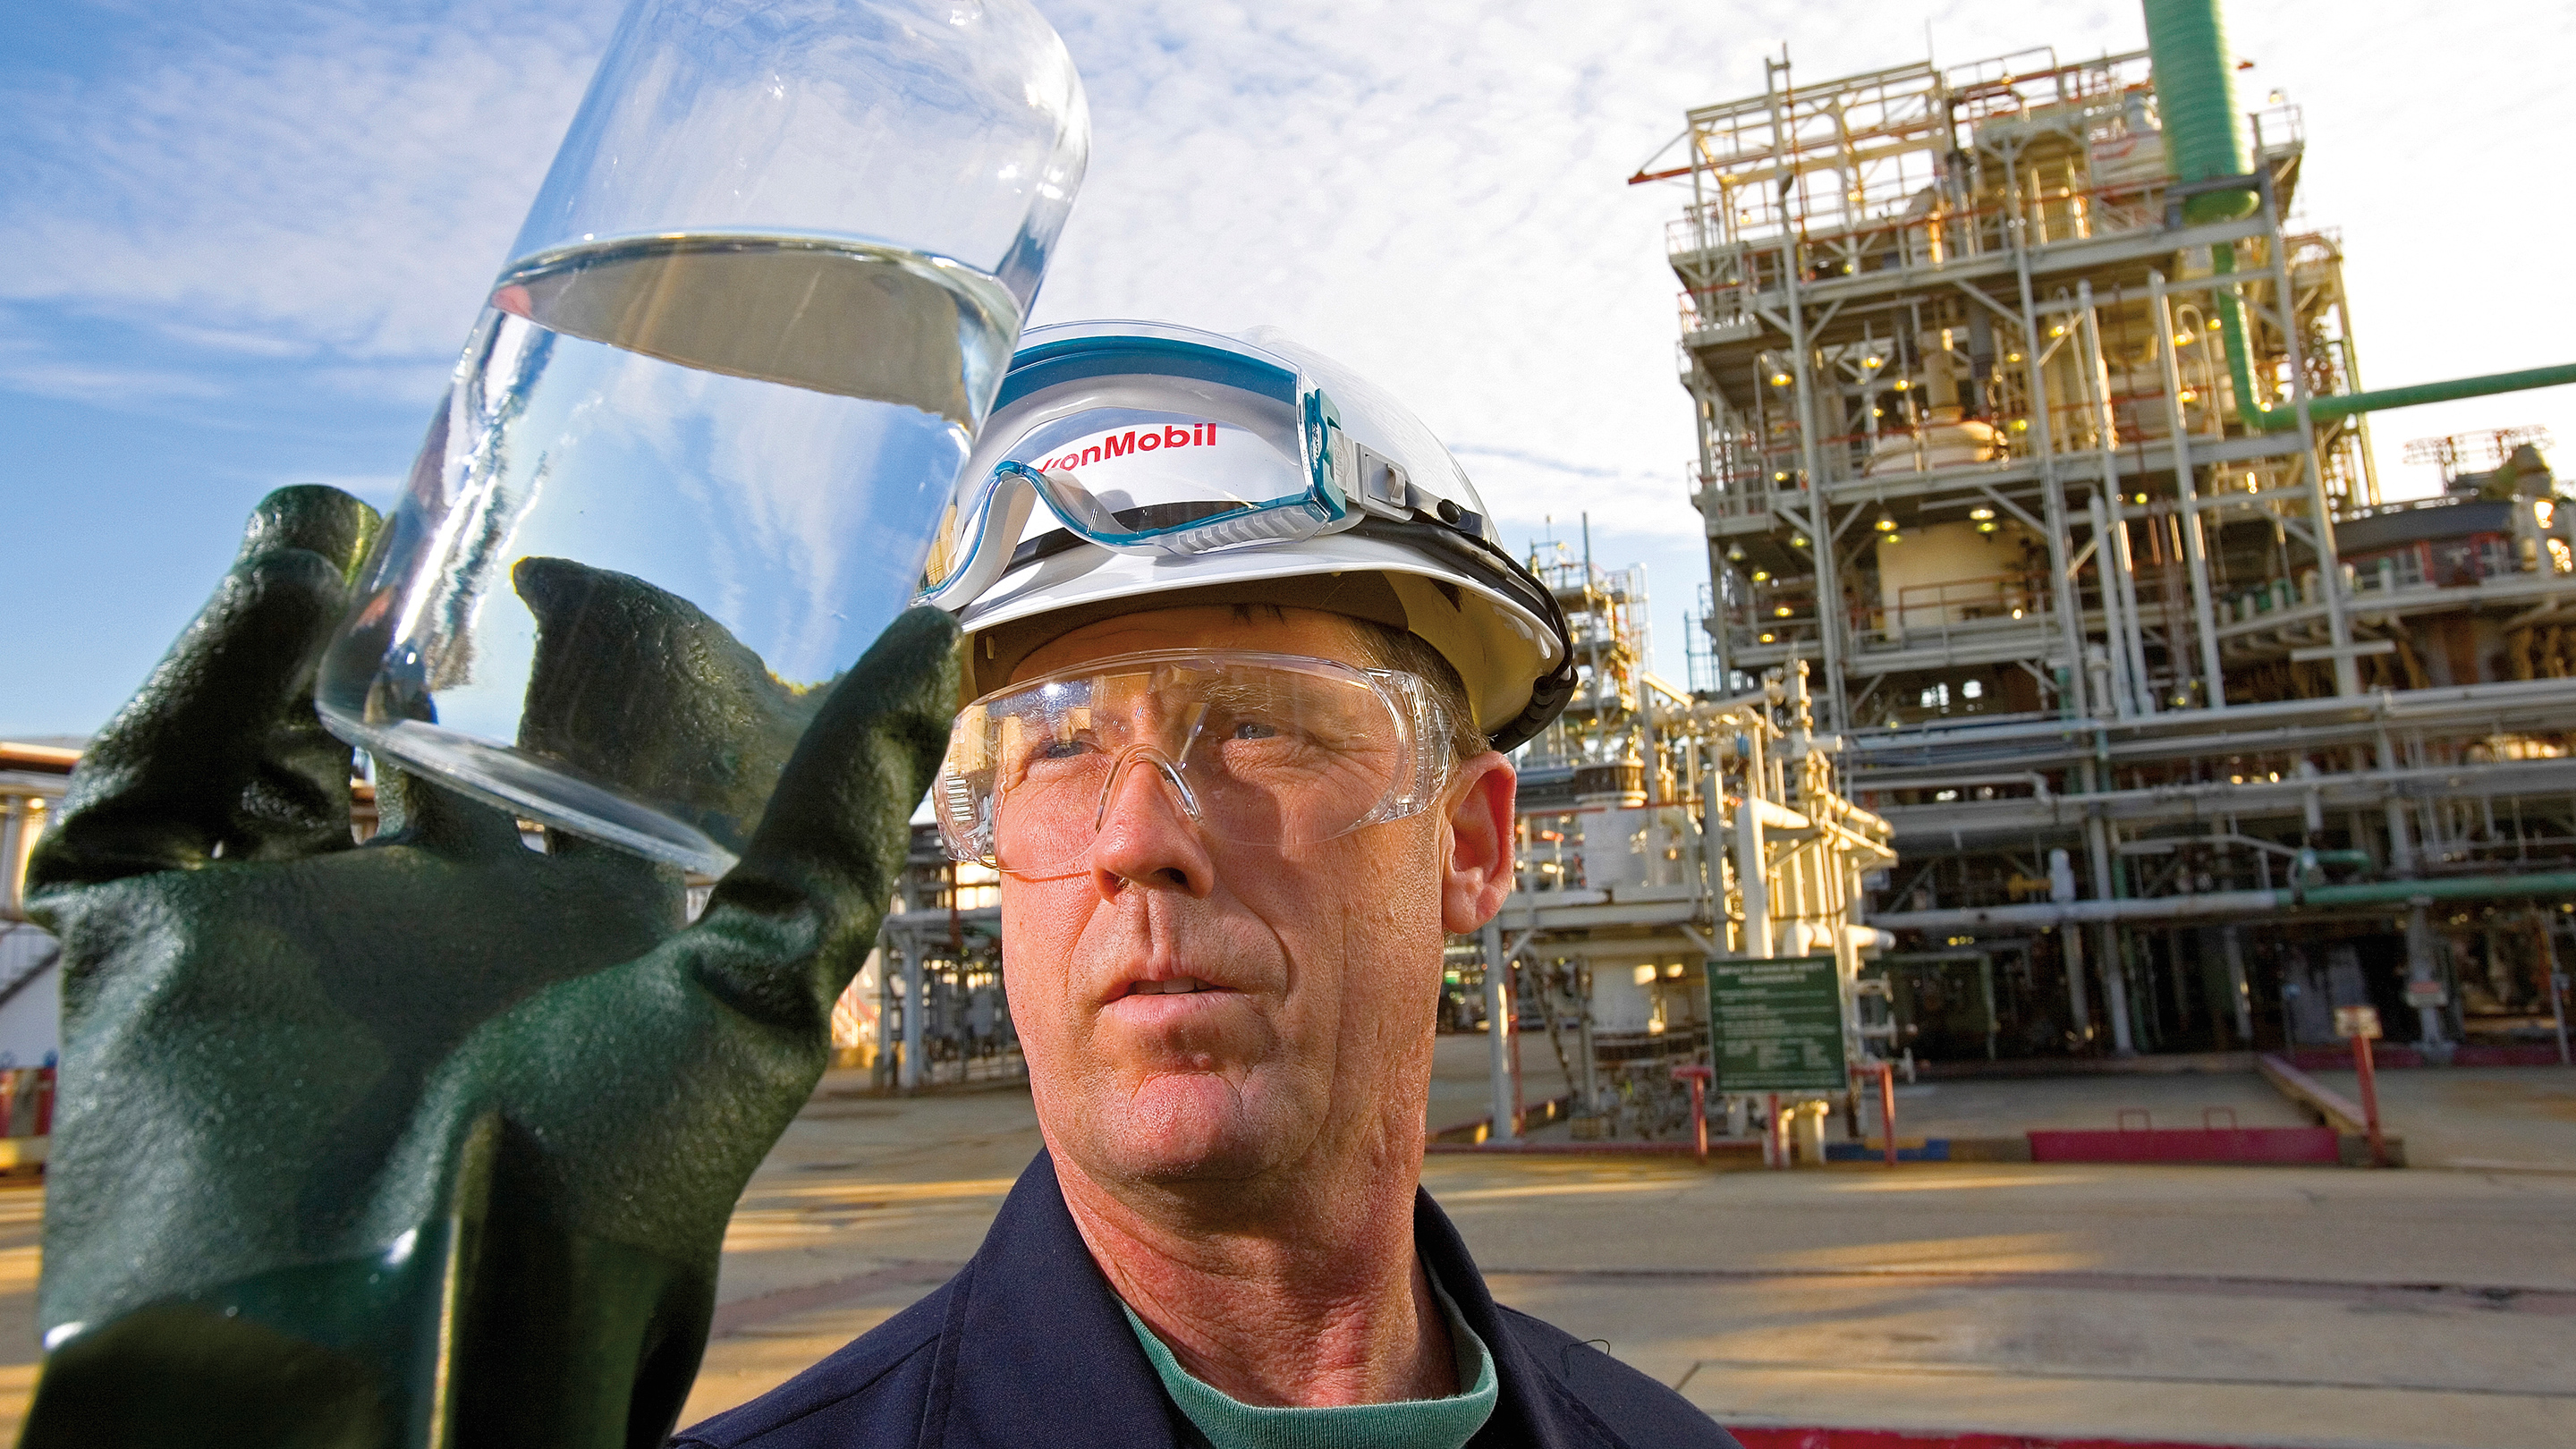 Chemical plant worker inspecting bottle